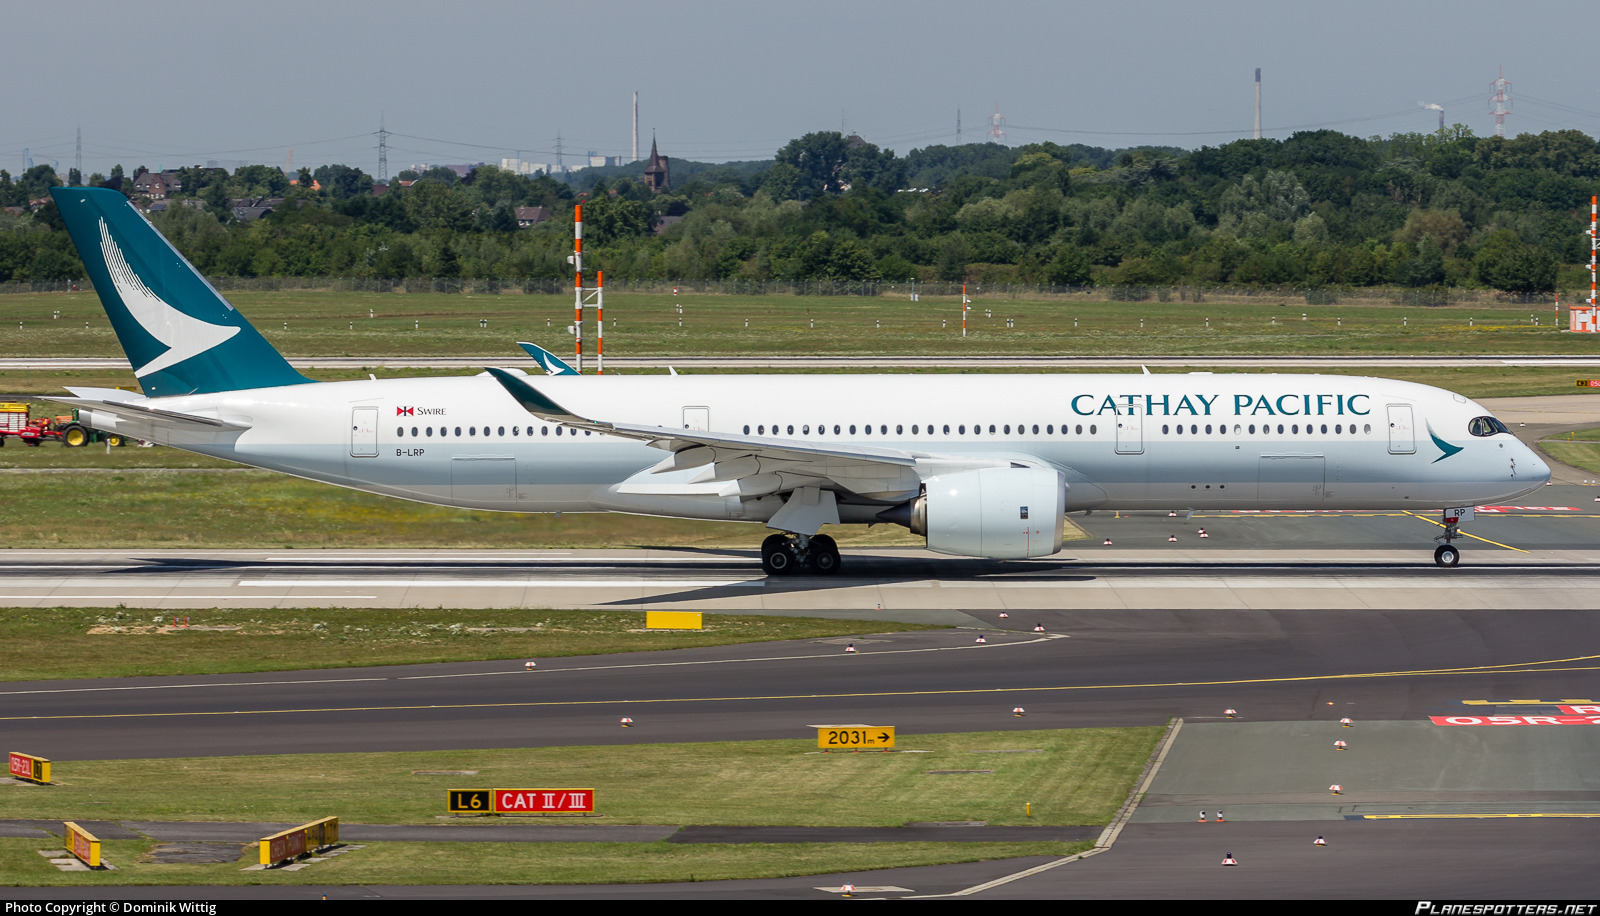 B-LRP Cathay Pacific Airbus A350-941 Photo by Dominik Wittig | ID 781737 | Planespotters.net